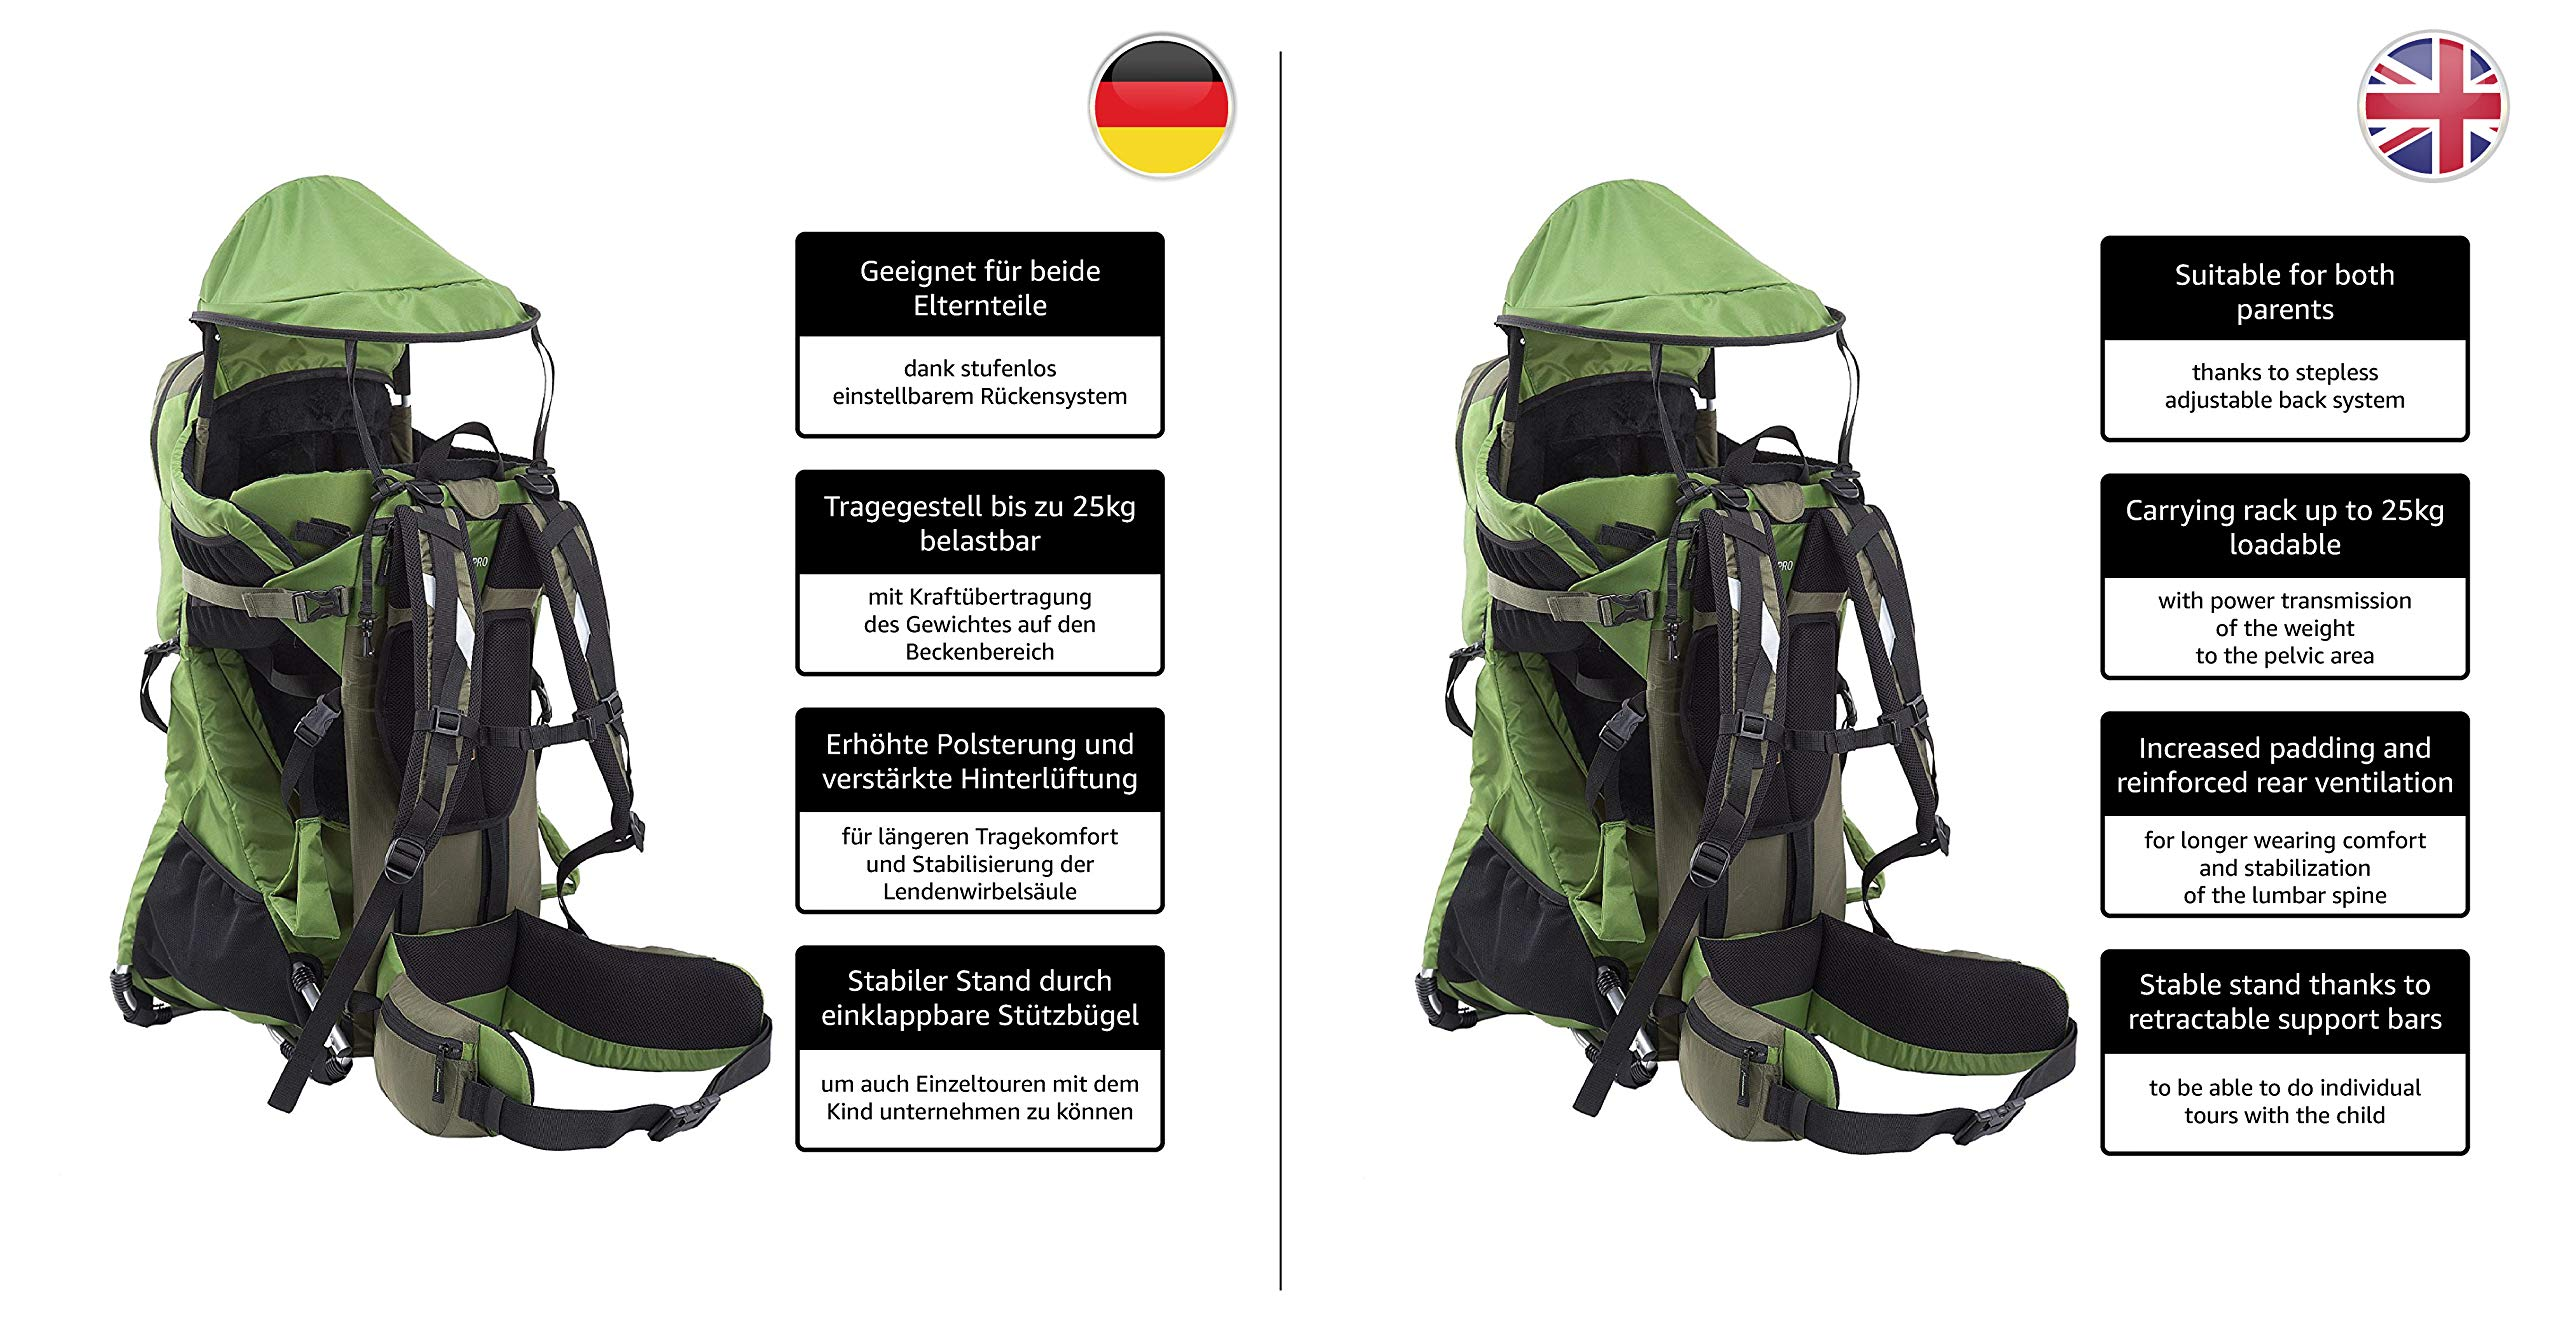 MONTIS RANGER PRO - Premium Backpack/Child Carrier - Holds up to 25kg M MONTIS OUTDOOR 89cm high, 37cm wide | Carries loads up to 25kg, seat bag 30L | Approx. 2.3kg (without extras) Easy-clean outer material | Fully-adjustable, padded 5-point child harness Super soft plush lining, raised wind guard, can be loaded from both sides | Fully-adjustable carry support system, additional ergonomic options for women | Comfortable waist belt for extended wearing with side pockets 4